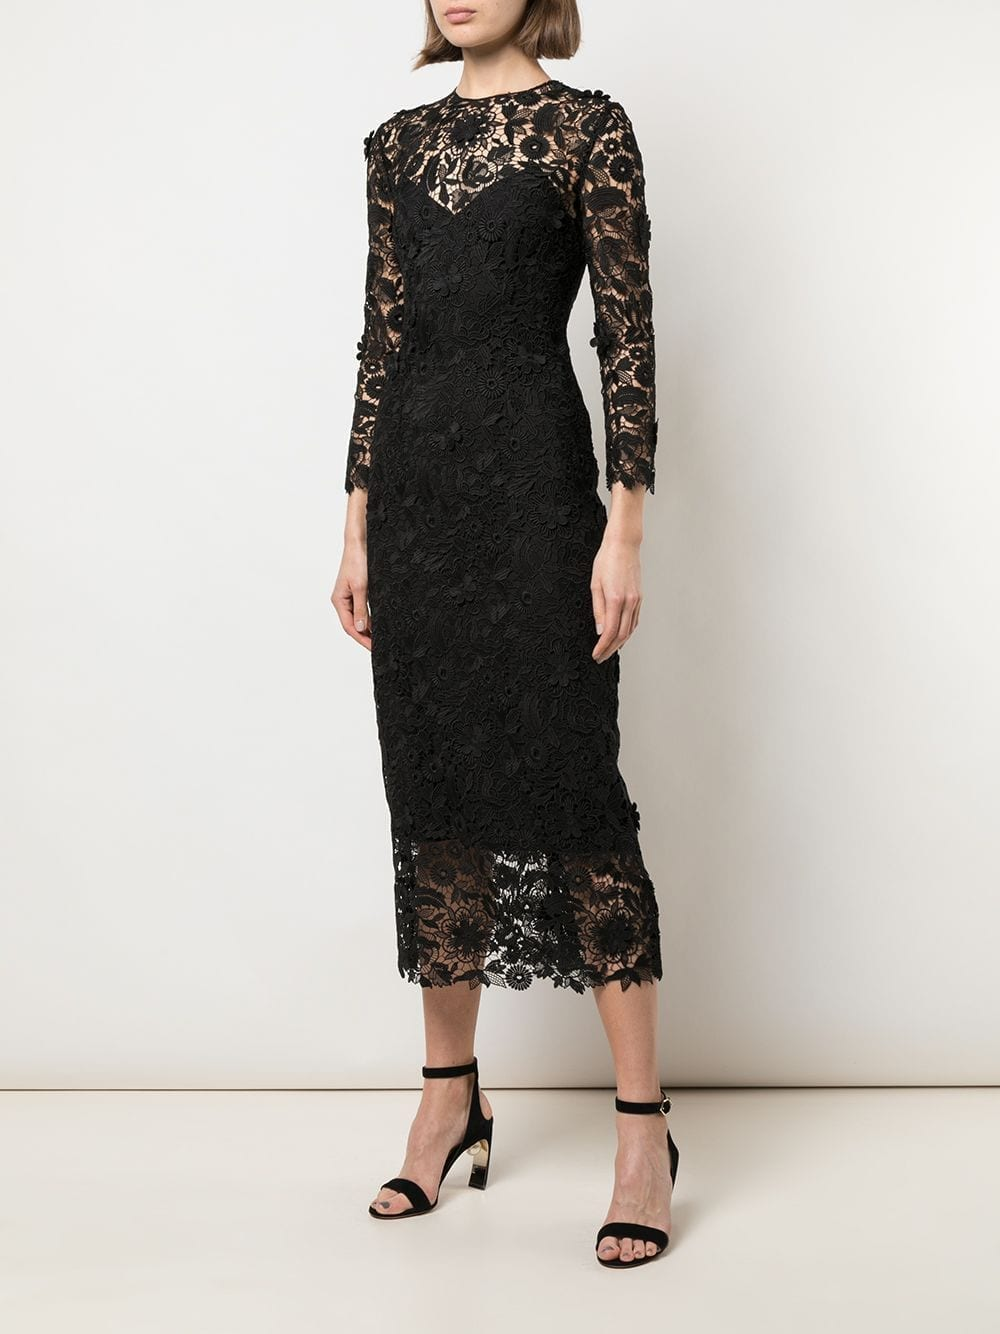 CAROLINA HERRERA Lace Midi Dress